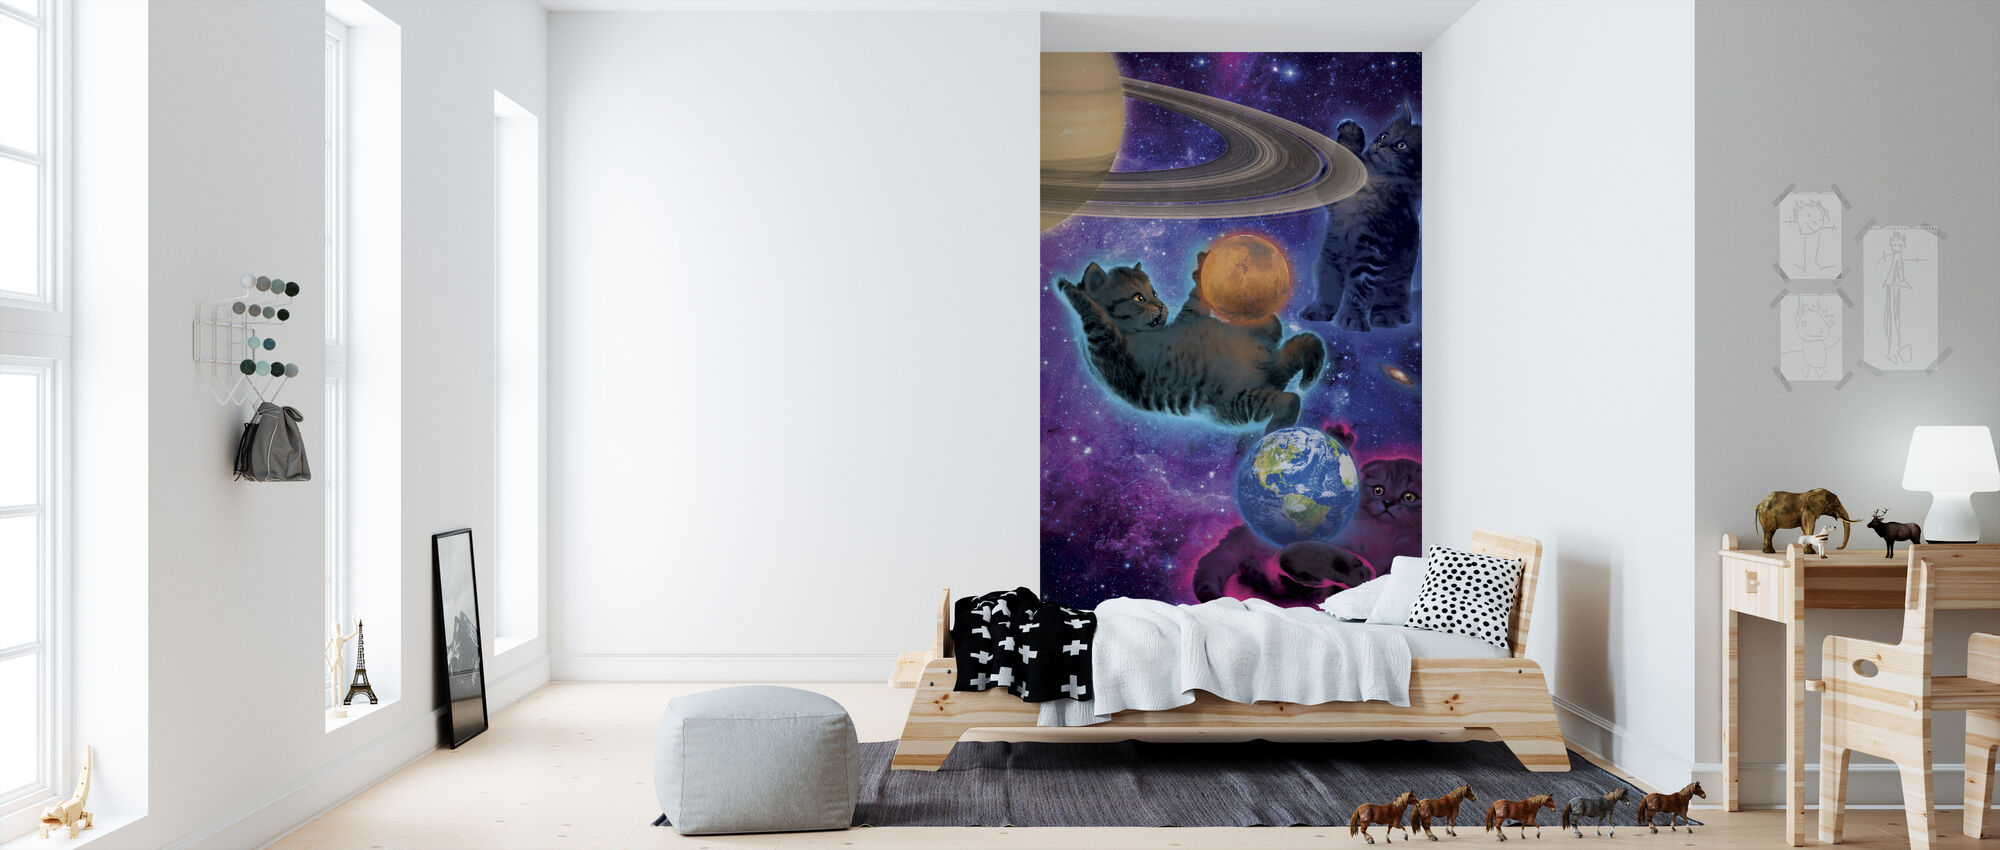 Kosmische Kittens - Behang - Kinderkamer